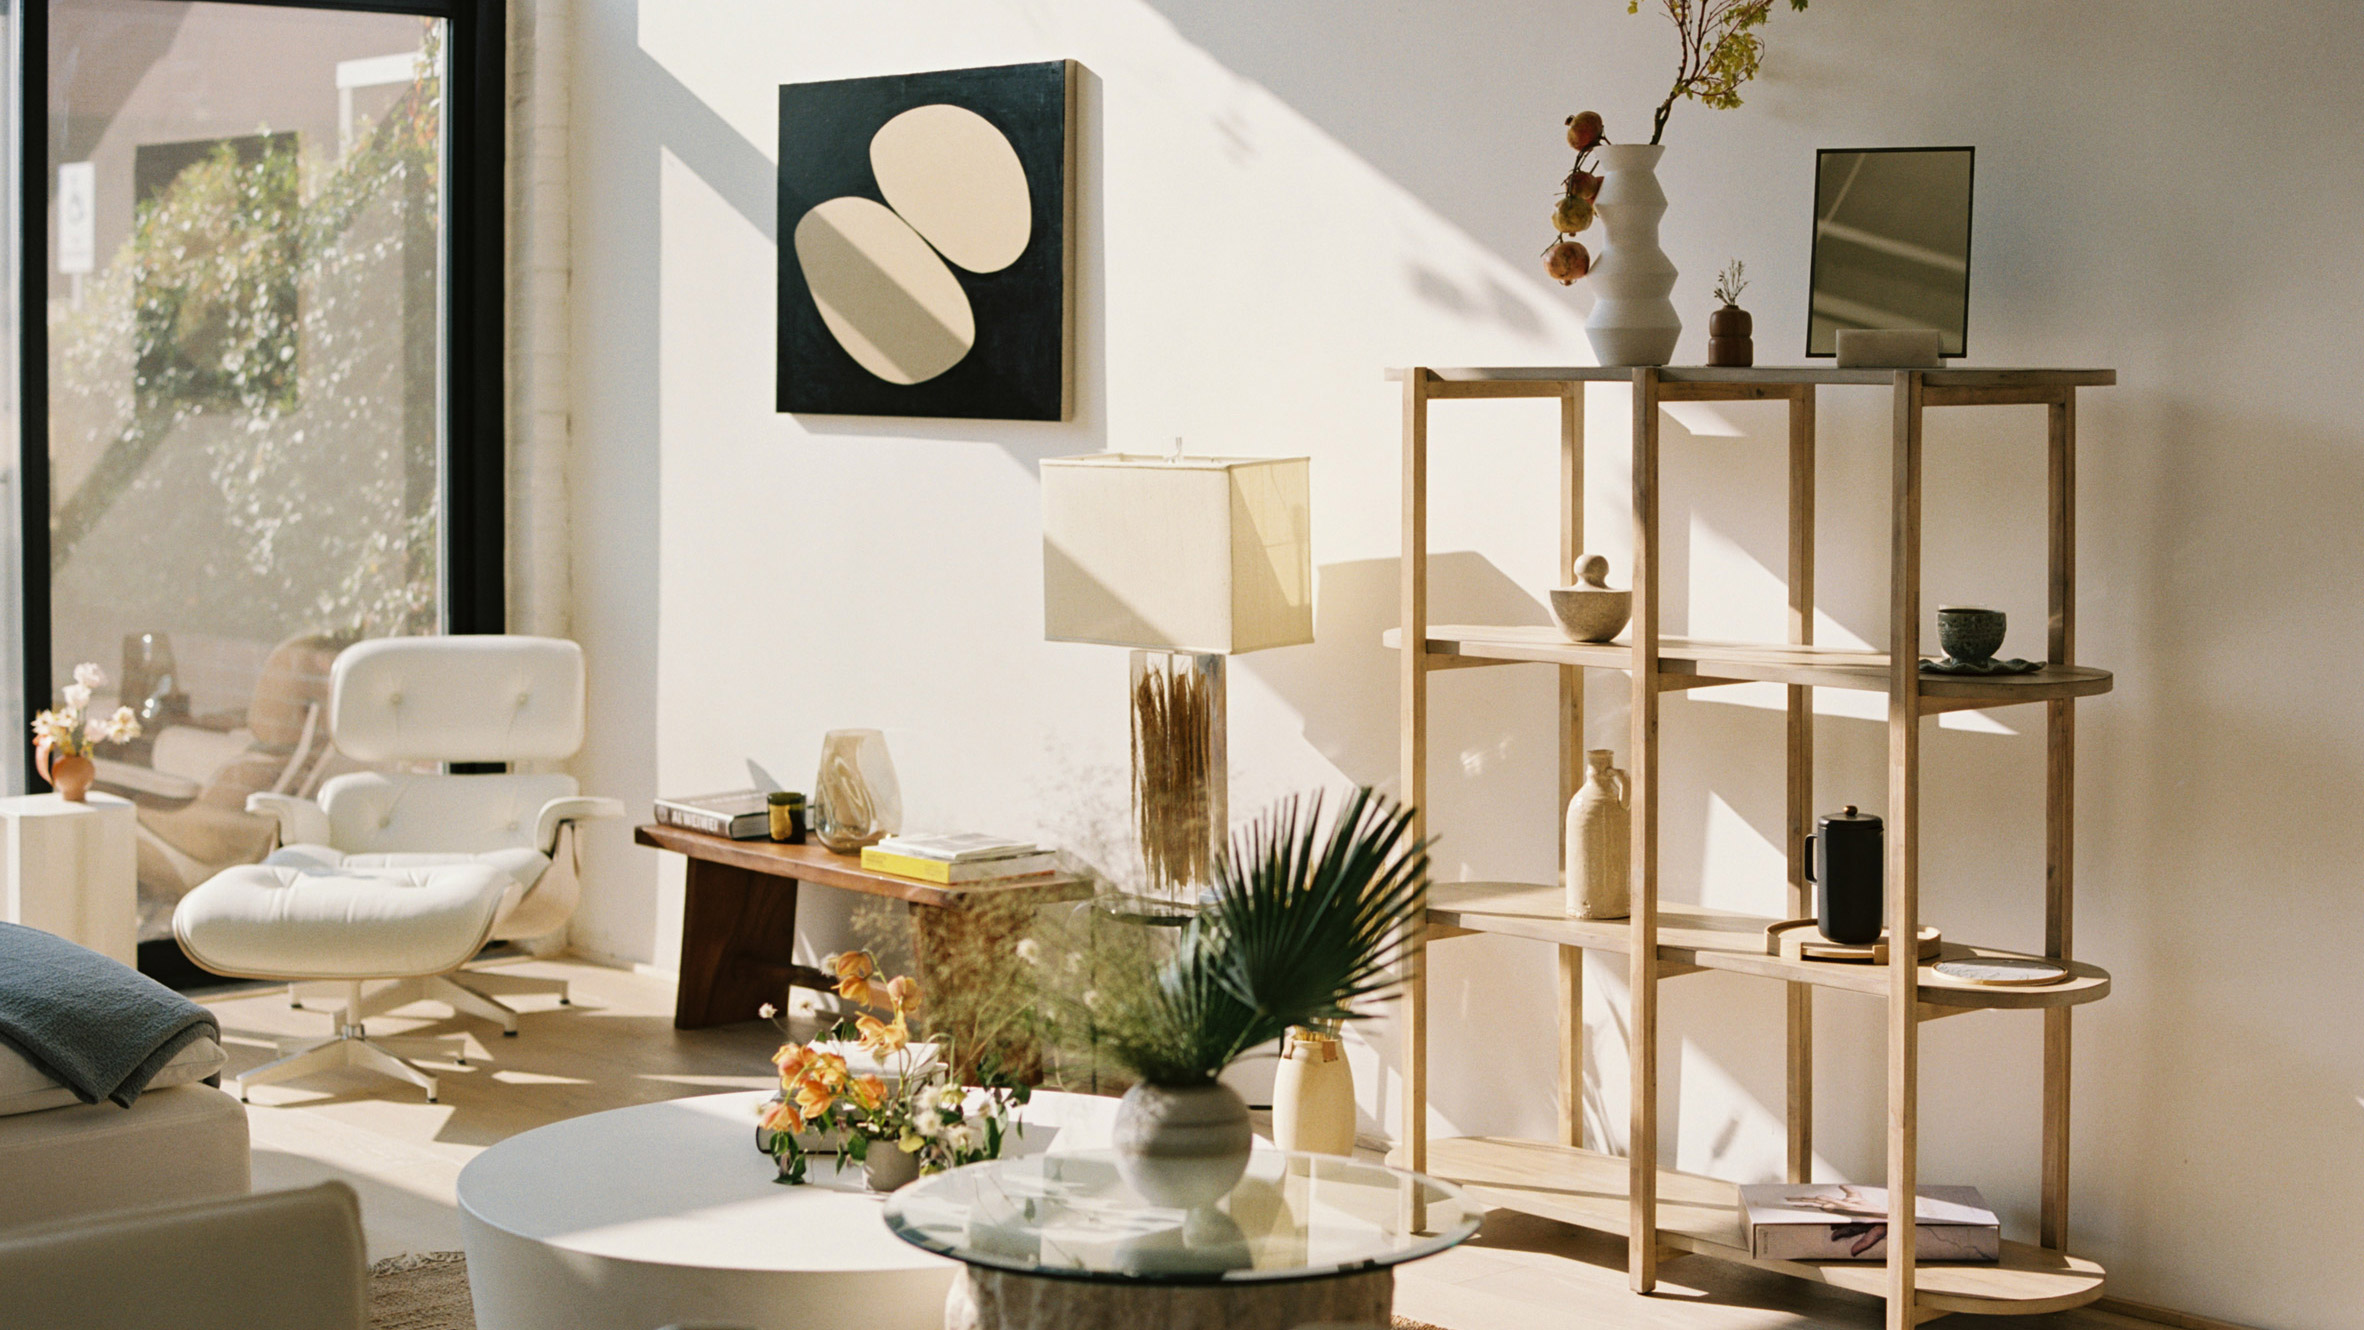 How to make the living room more elegant with Japandi style